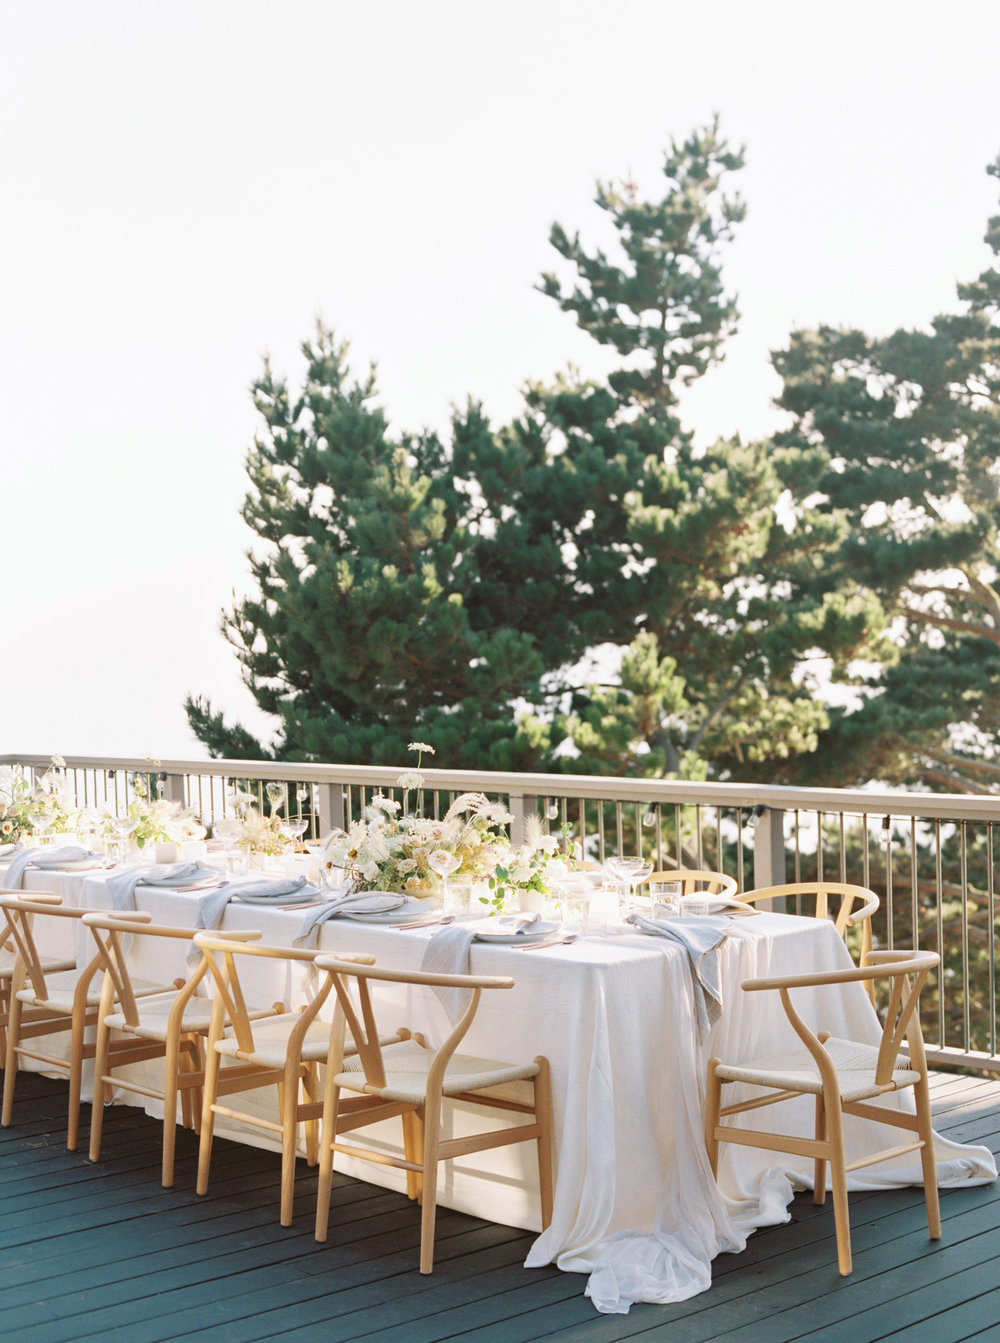 12th-Table-BIG-SUR-WEDDING-Erich-McVey-16